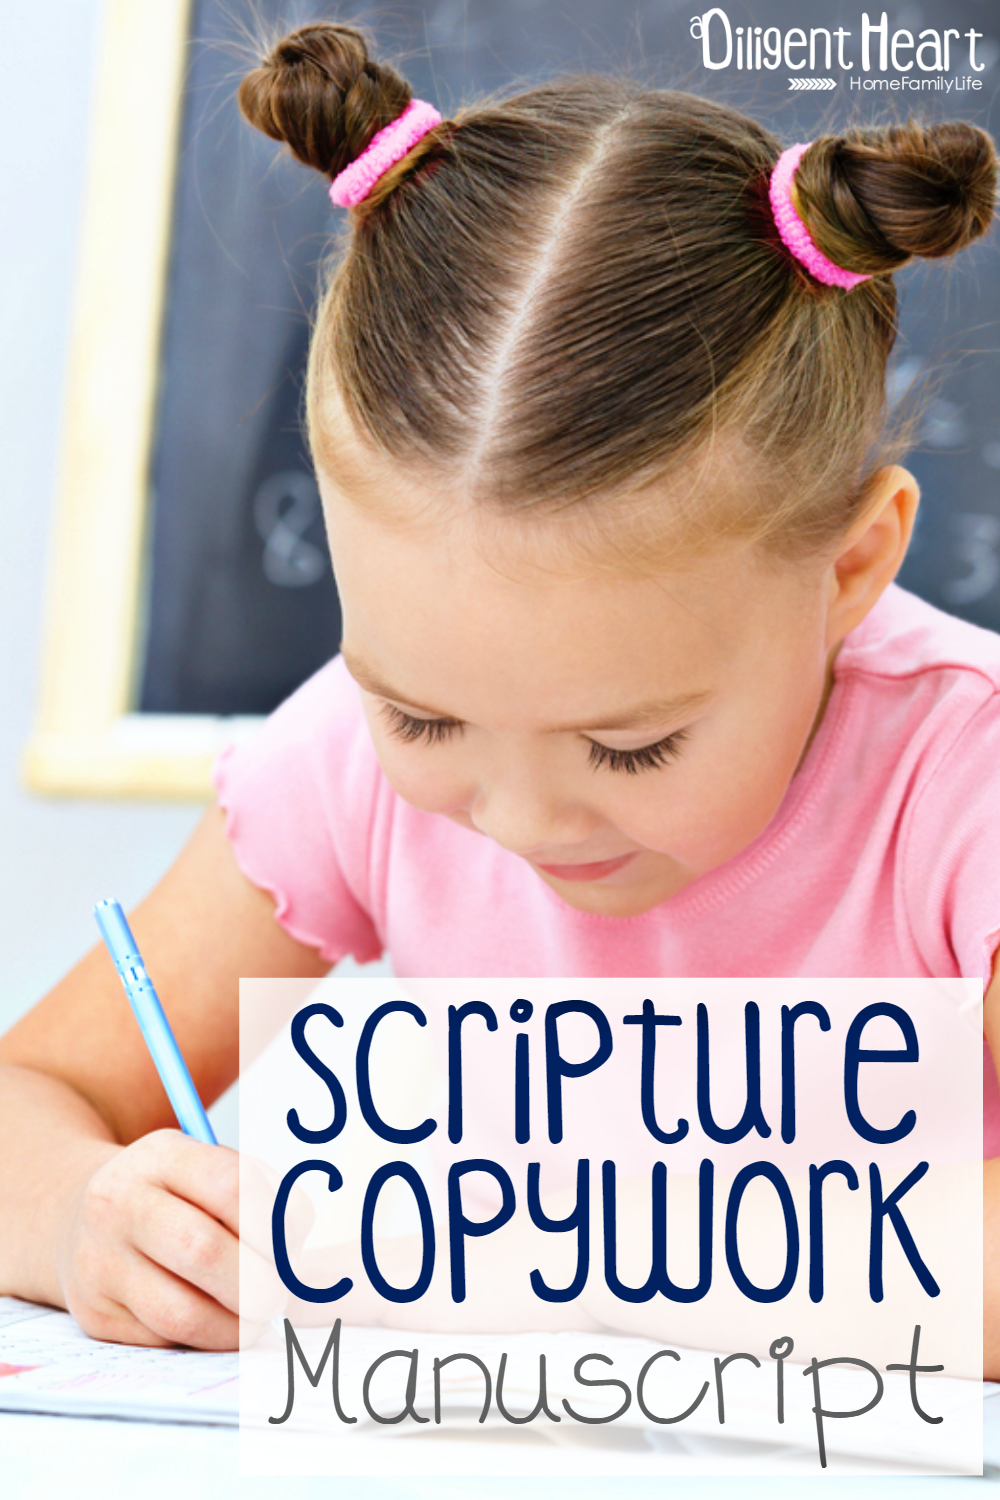 Each of the packs has 10 Bible verses for your kiddo to practice not just their handwriting but also their Bible Verses! Scripture Copywork Manuscript | adiligentheart.com